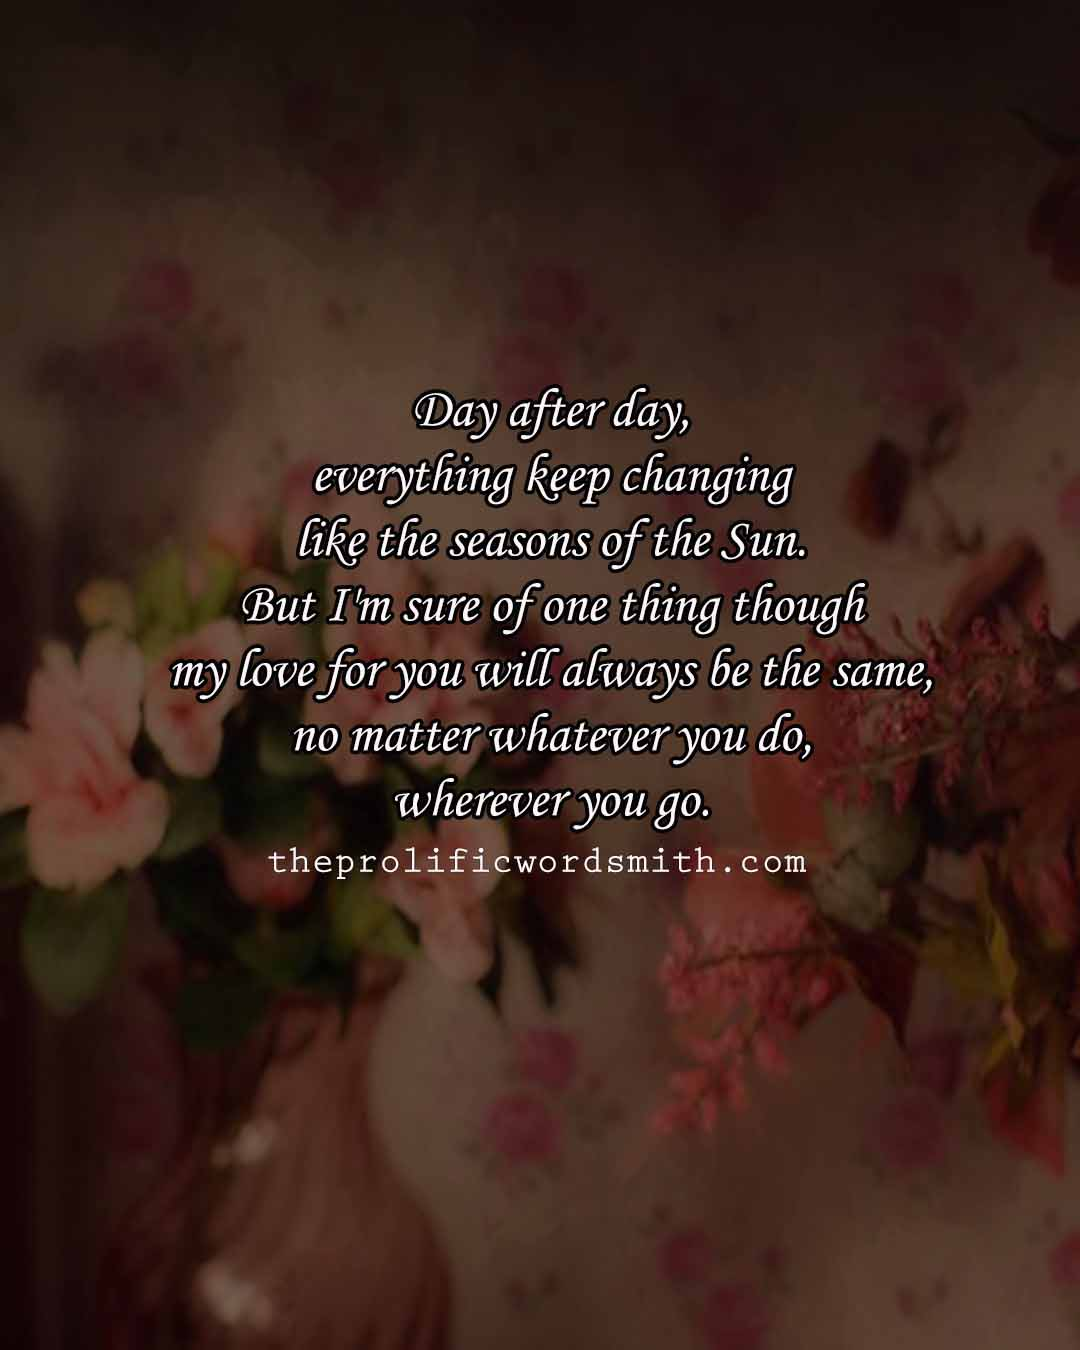 Most Romantic Love Quotes for Her for Facebook and Instagram